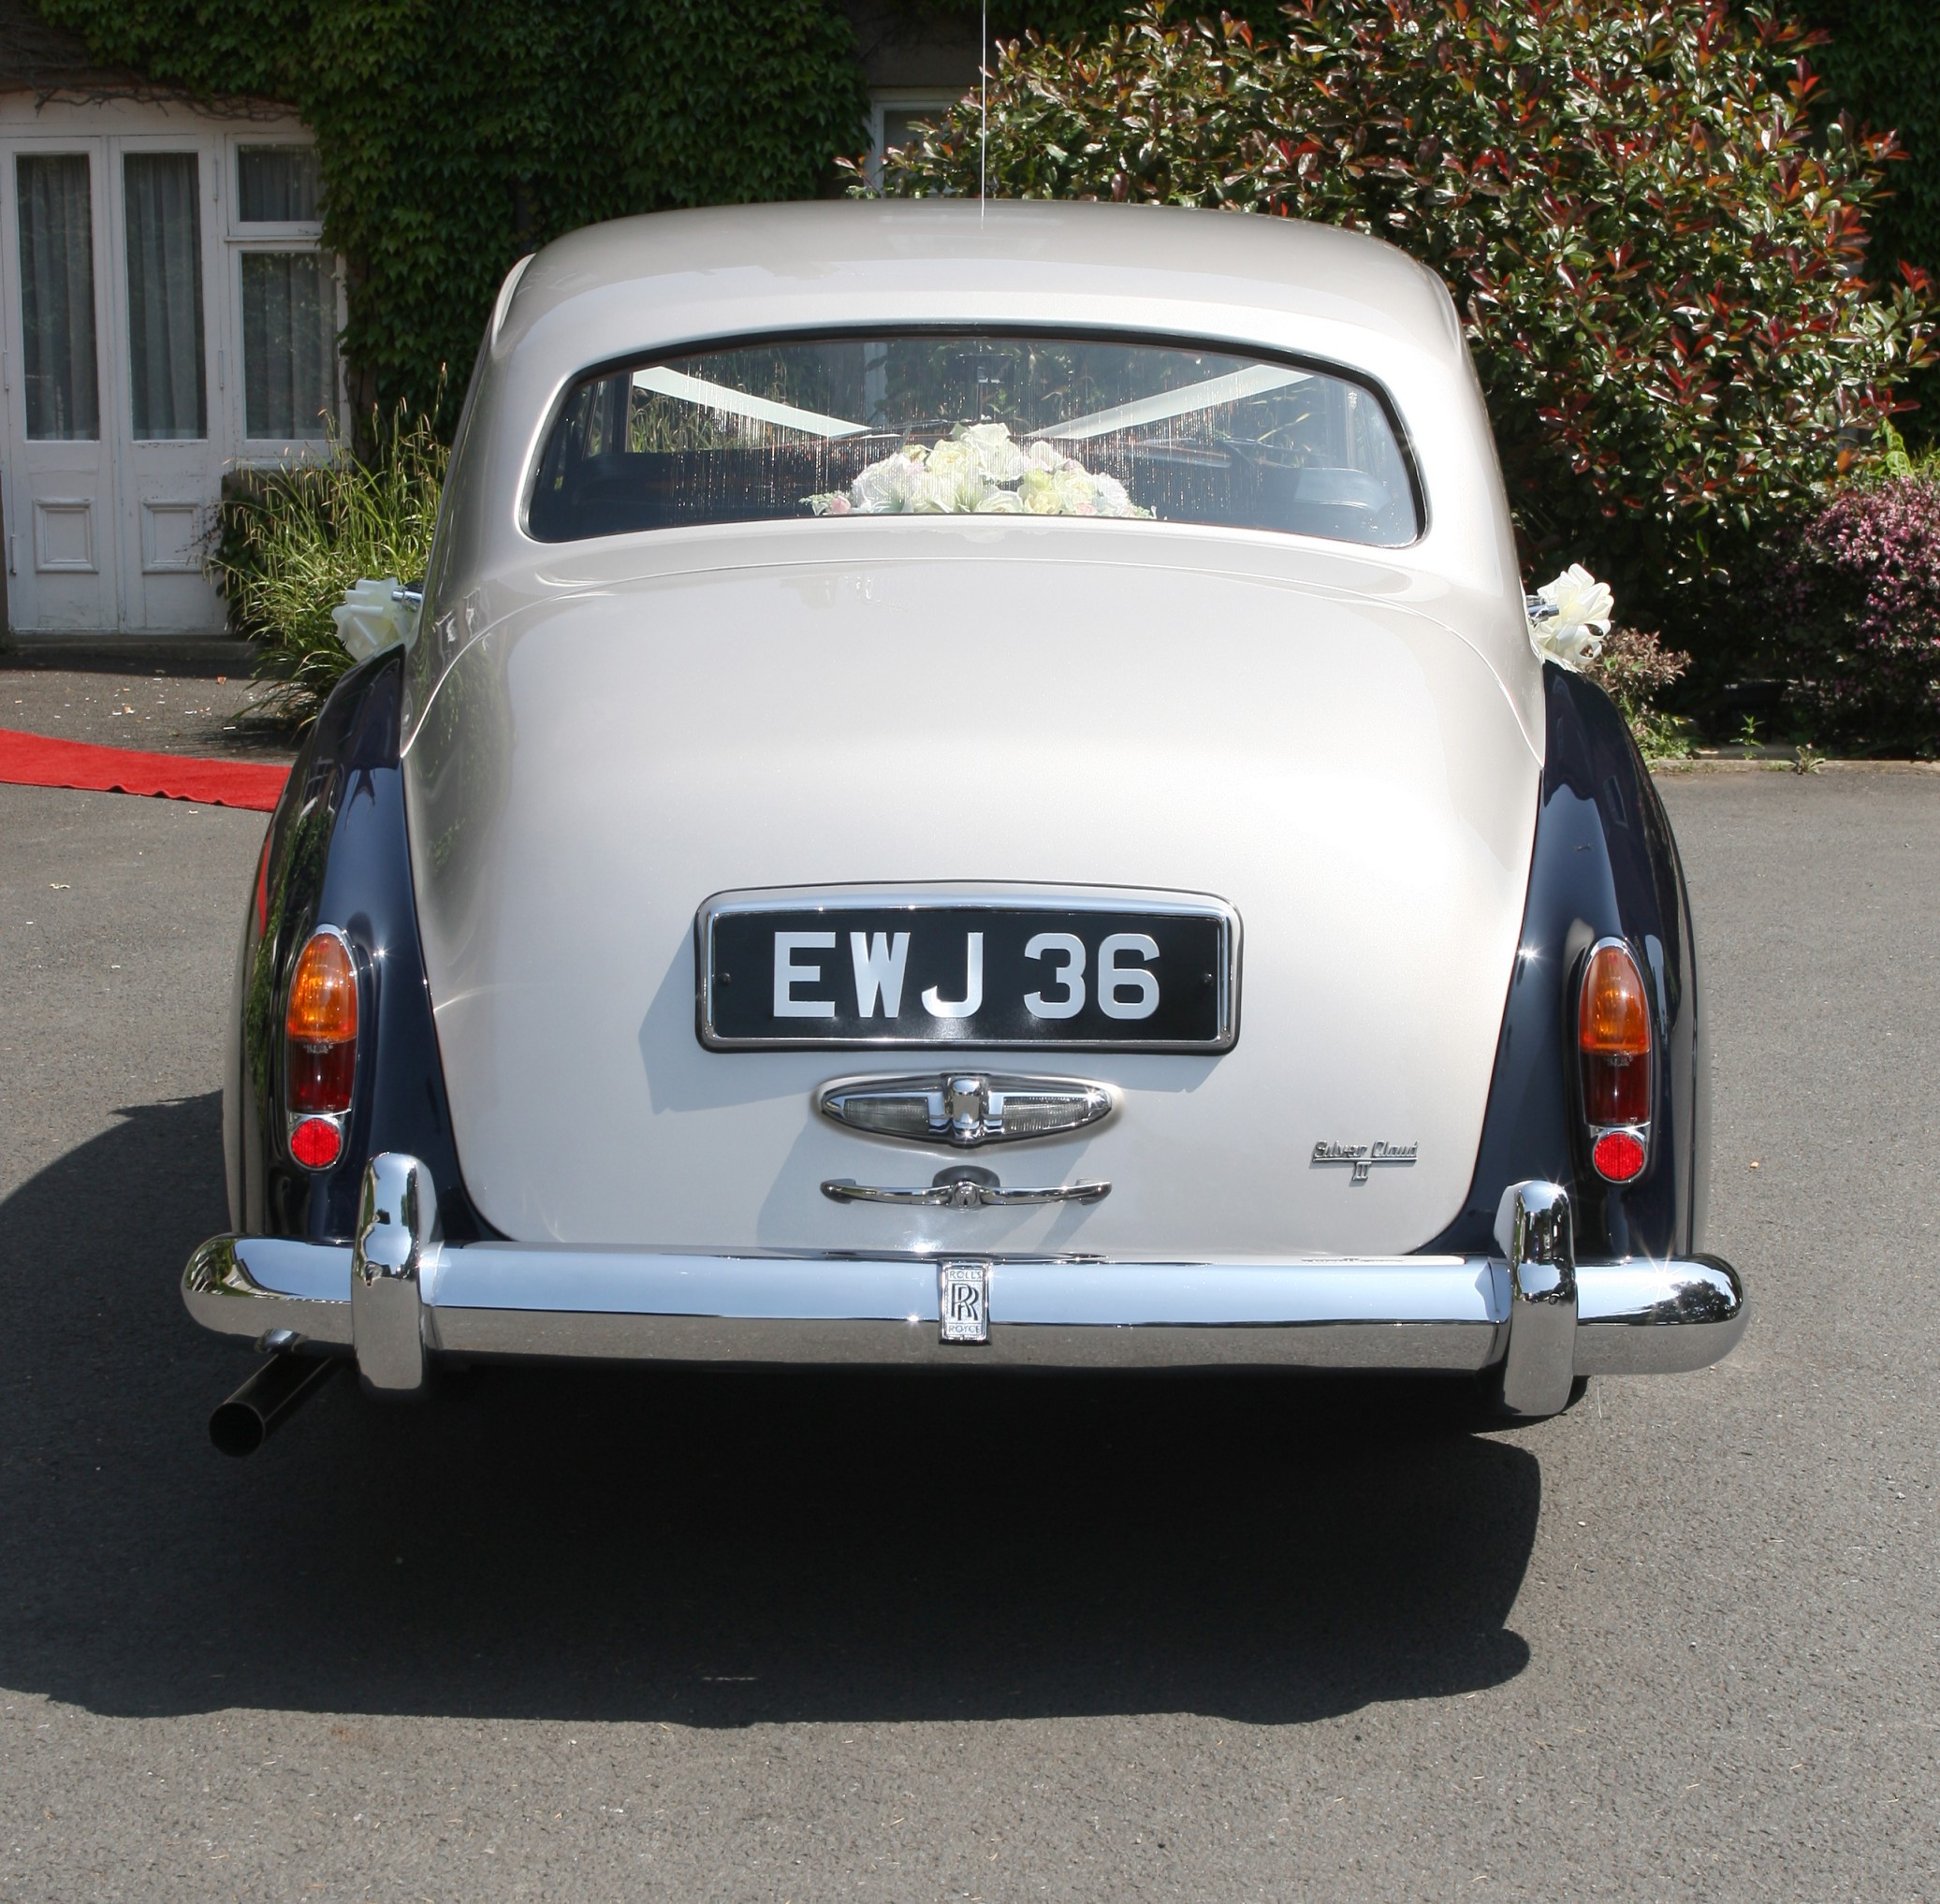 Gallery - Worcestershire Wedding Car Hire